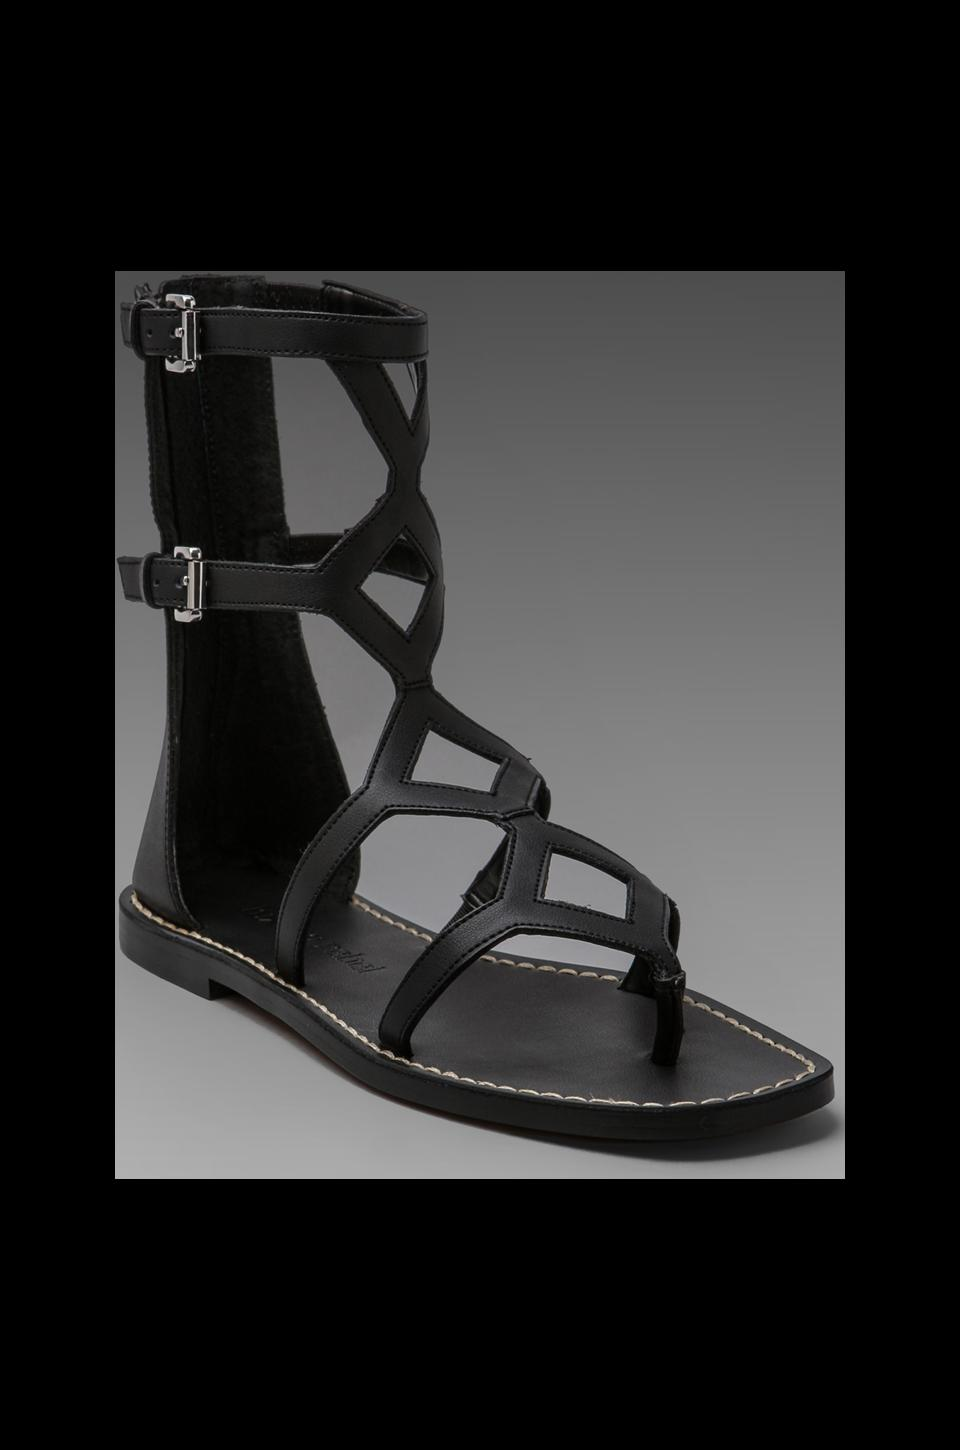 Luxury Rebel Kendall High Sandal in Black